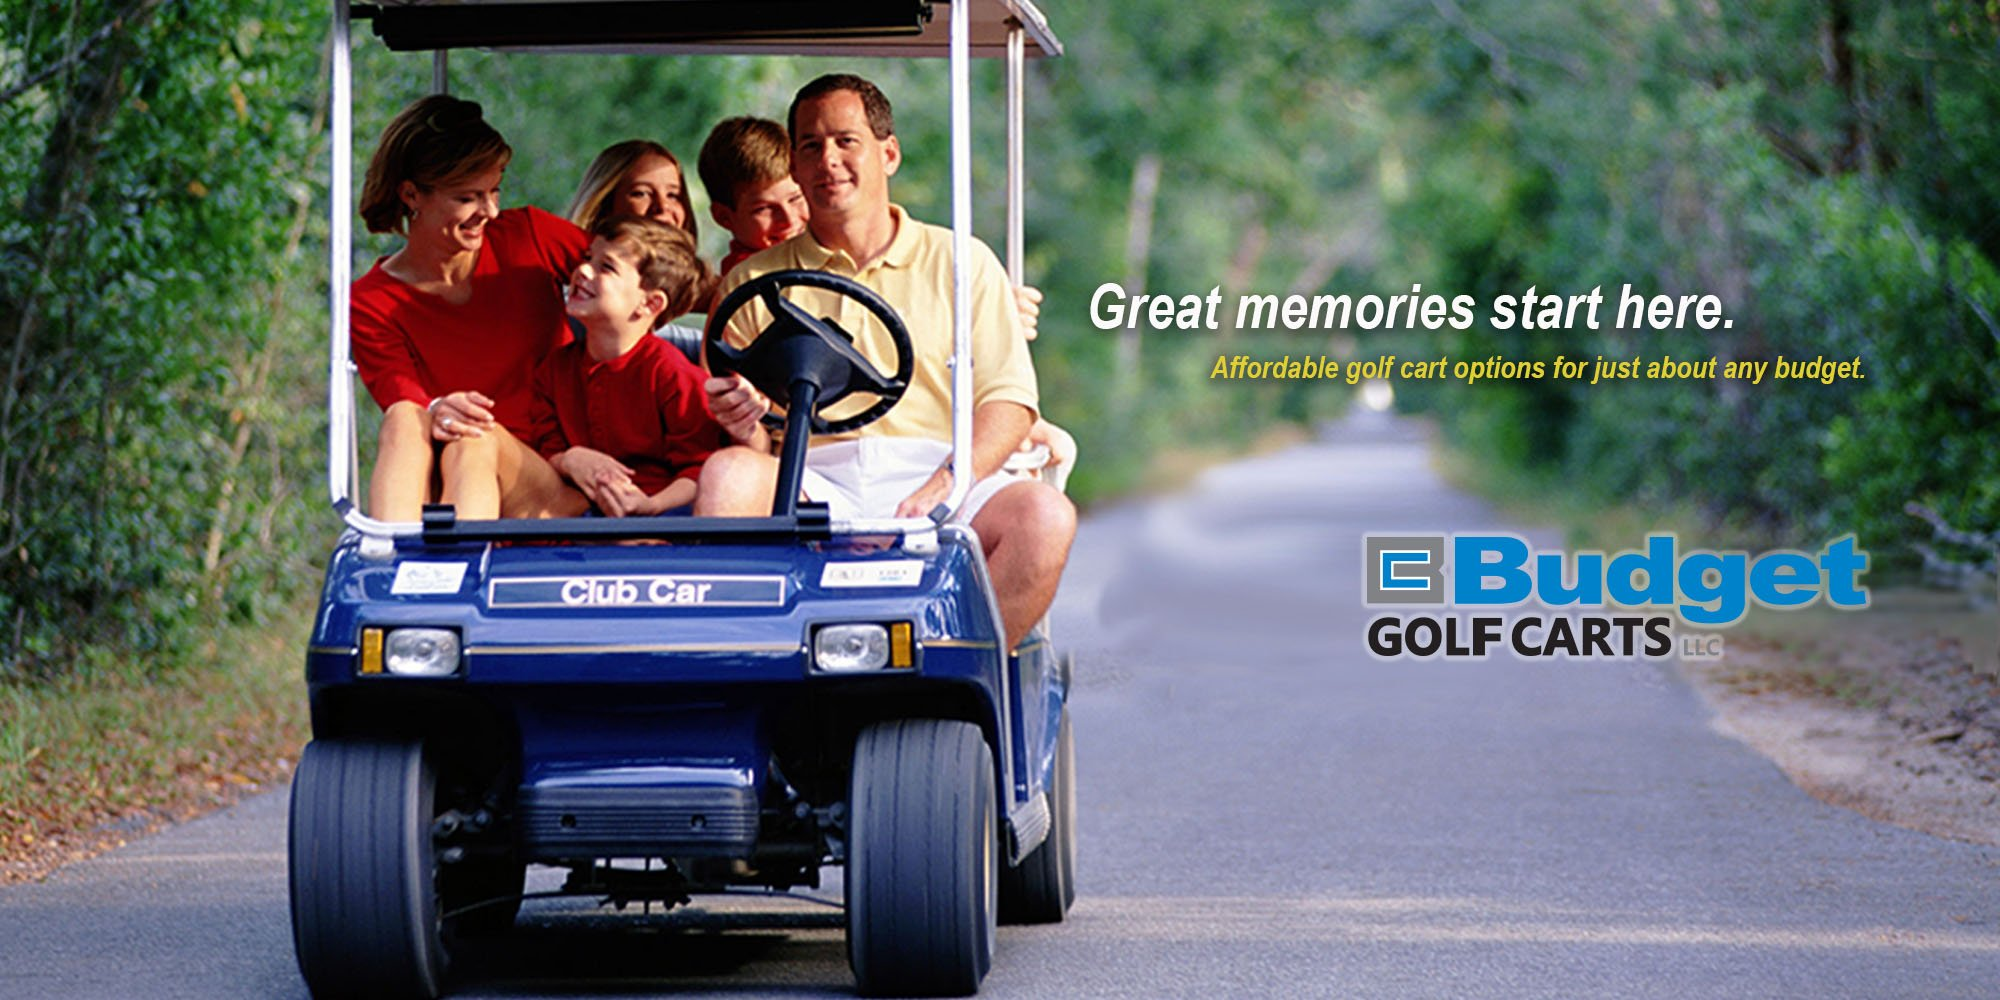 Budget-Golf-Carts-Club-Car-Homepage2-rev